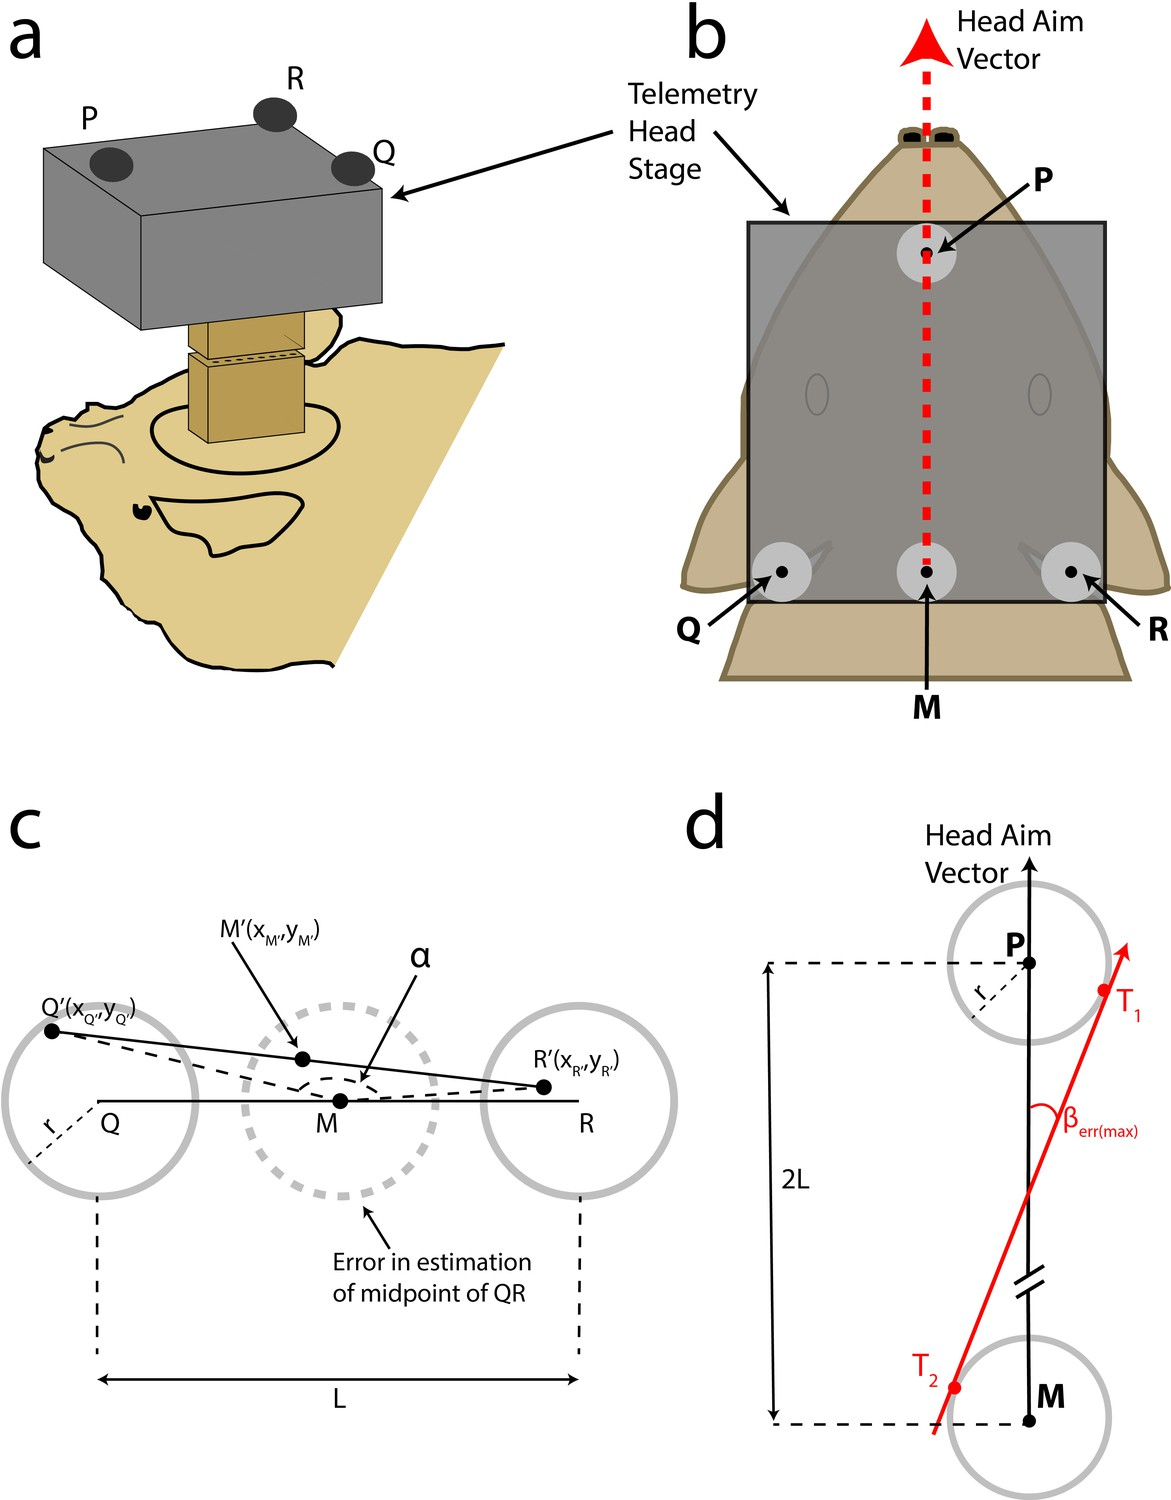 Dynamic Representation Of 3d Auditory Space In The Midbrain Atx Power Supply Restructuring Full Outage With Off Circuit Head Aim Reconstruction